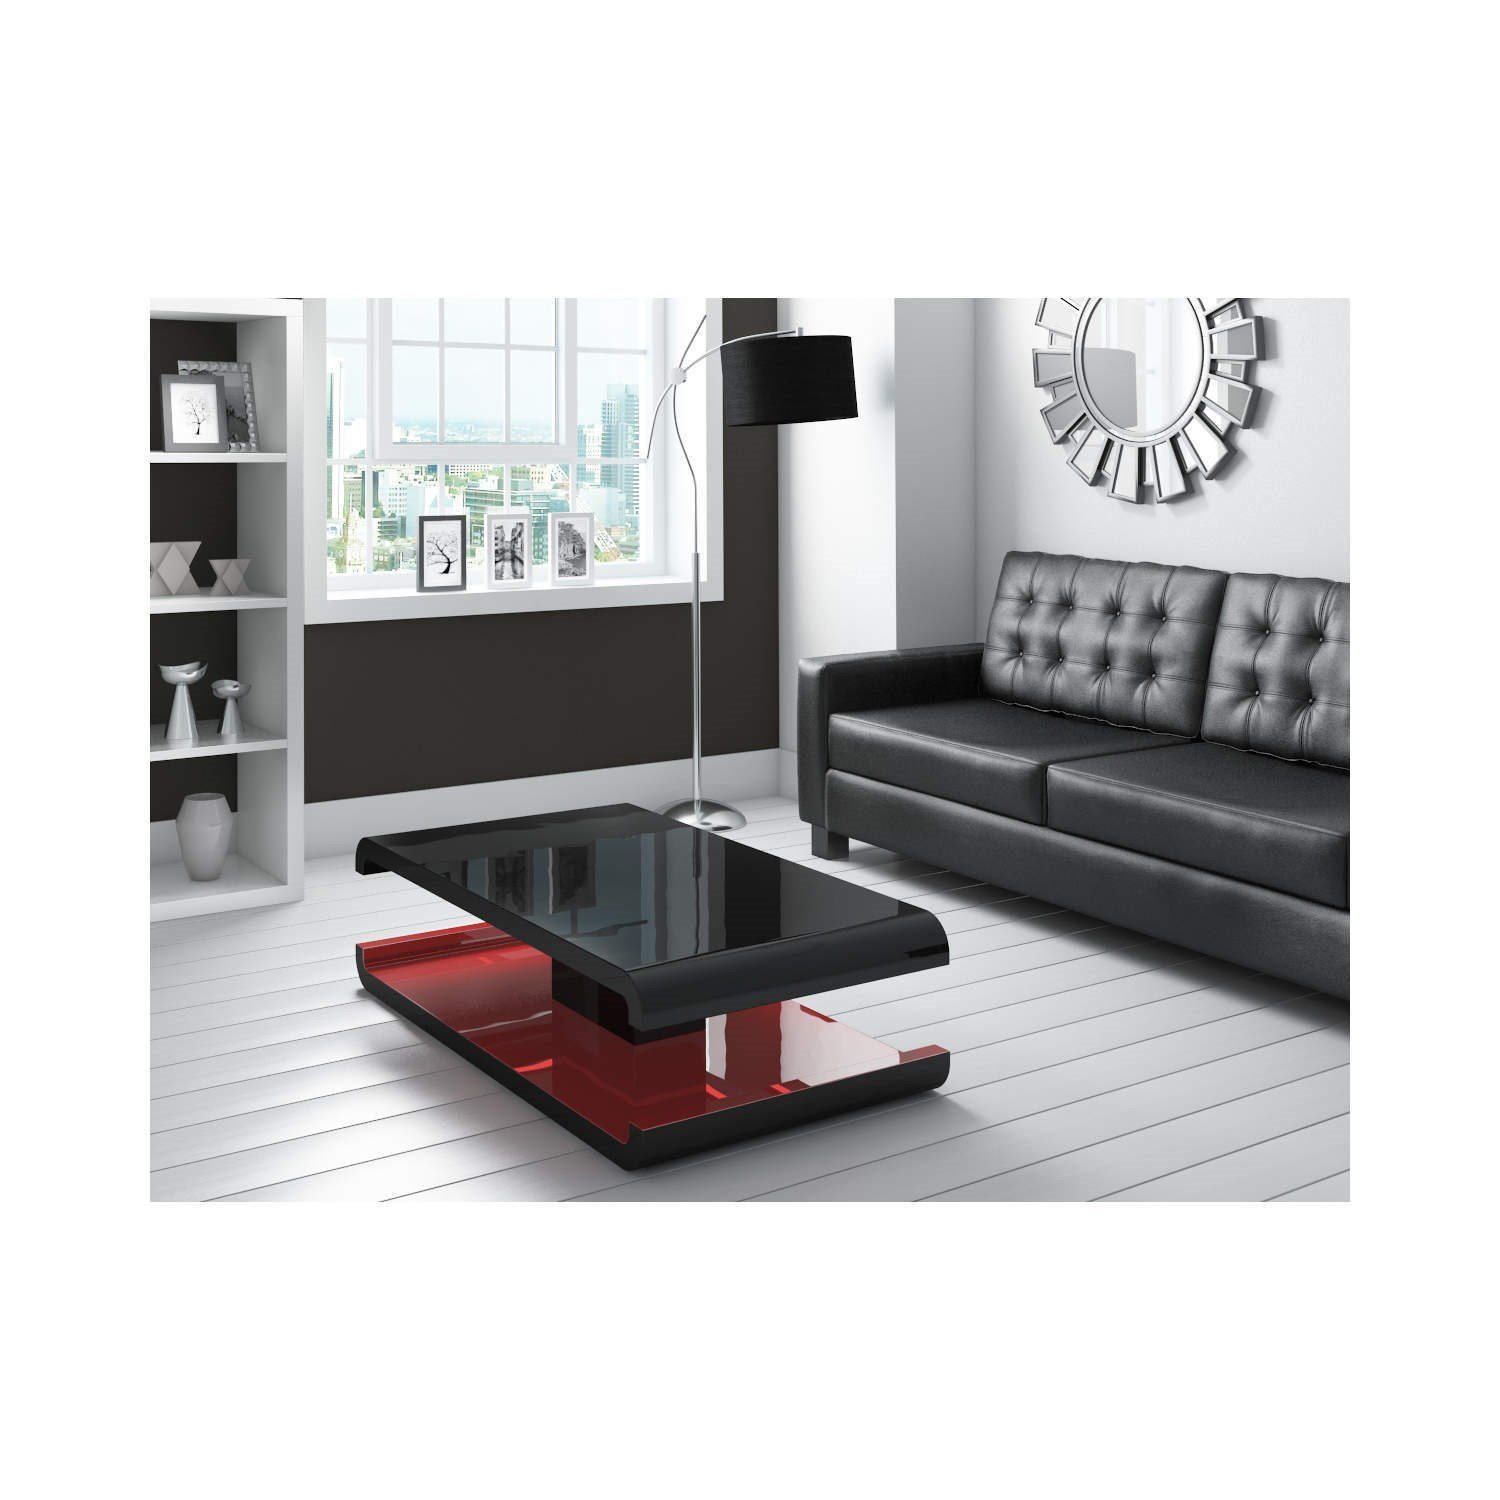 Tiffany Black High Gloss Coffee Table with LED Lighting Amazon